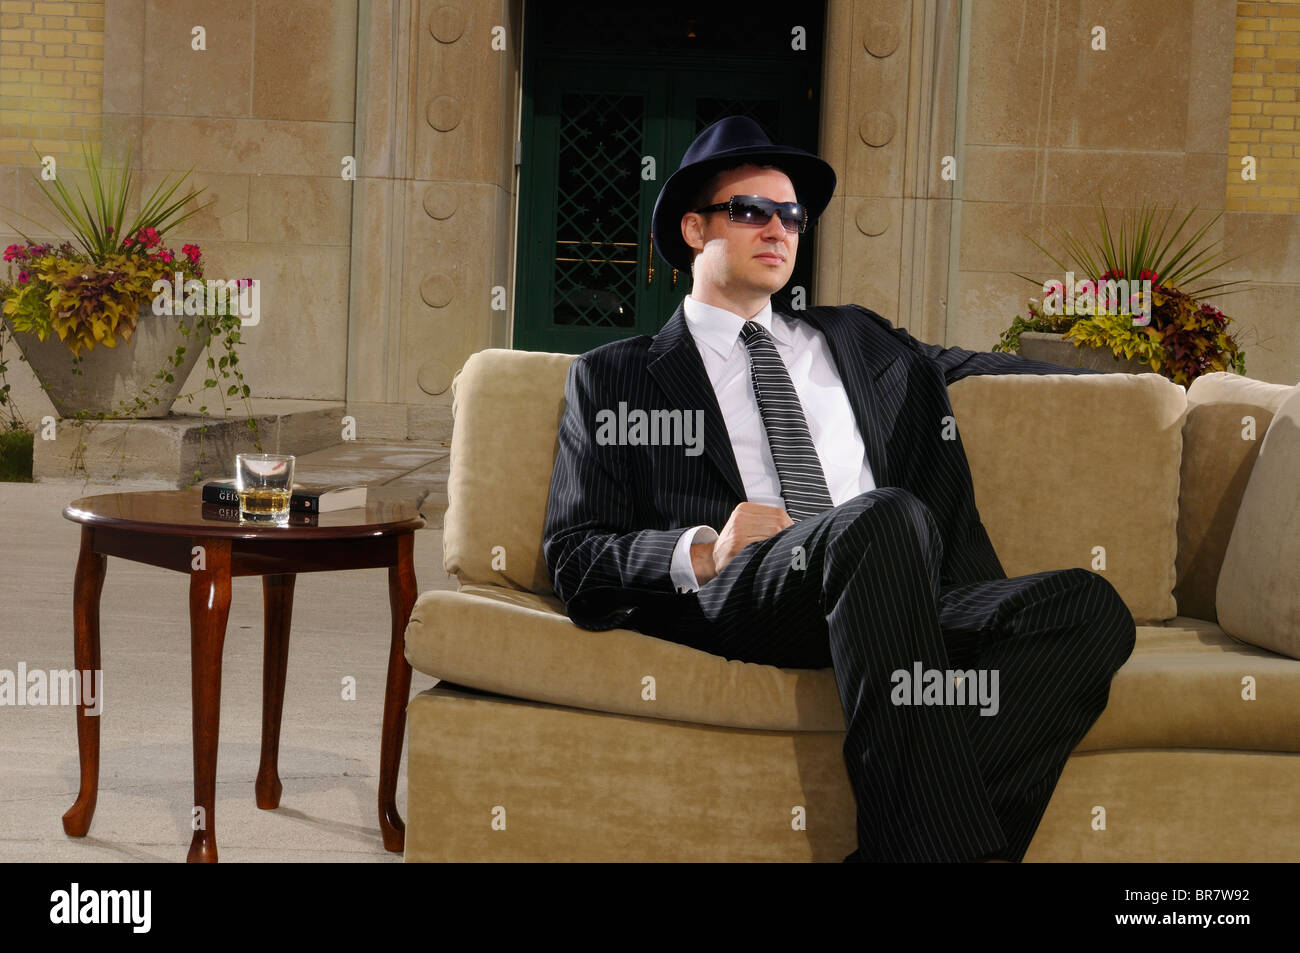 Gangster in hat and suit relaxing on a couch at a mansion with outdoor terrace RC Harris water treatment plant Toronto - Stock Image